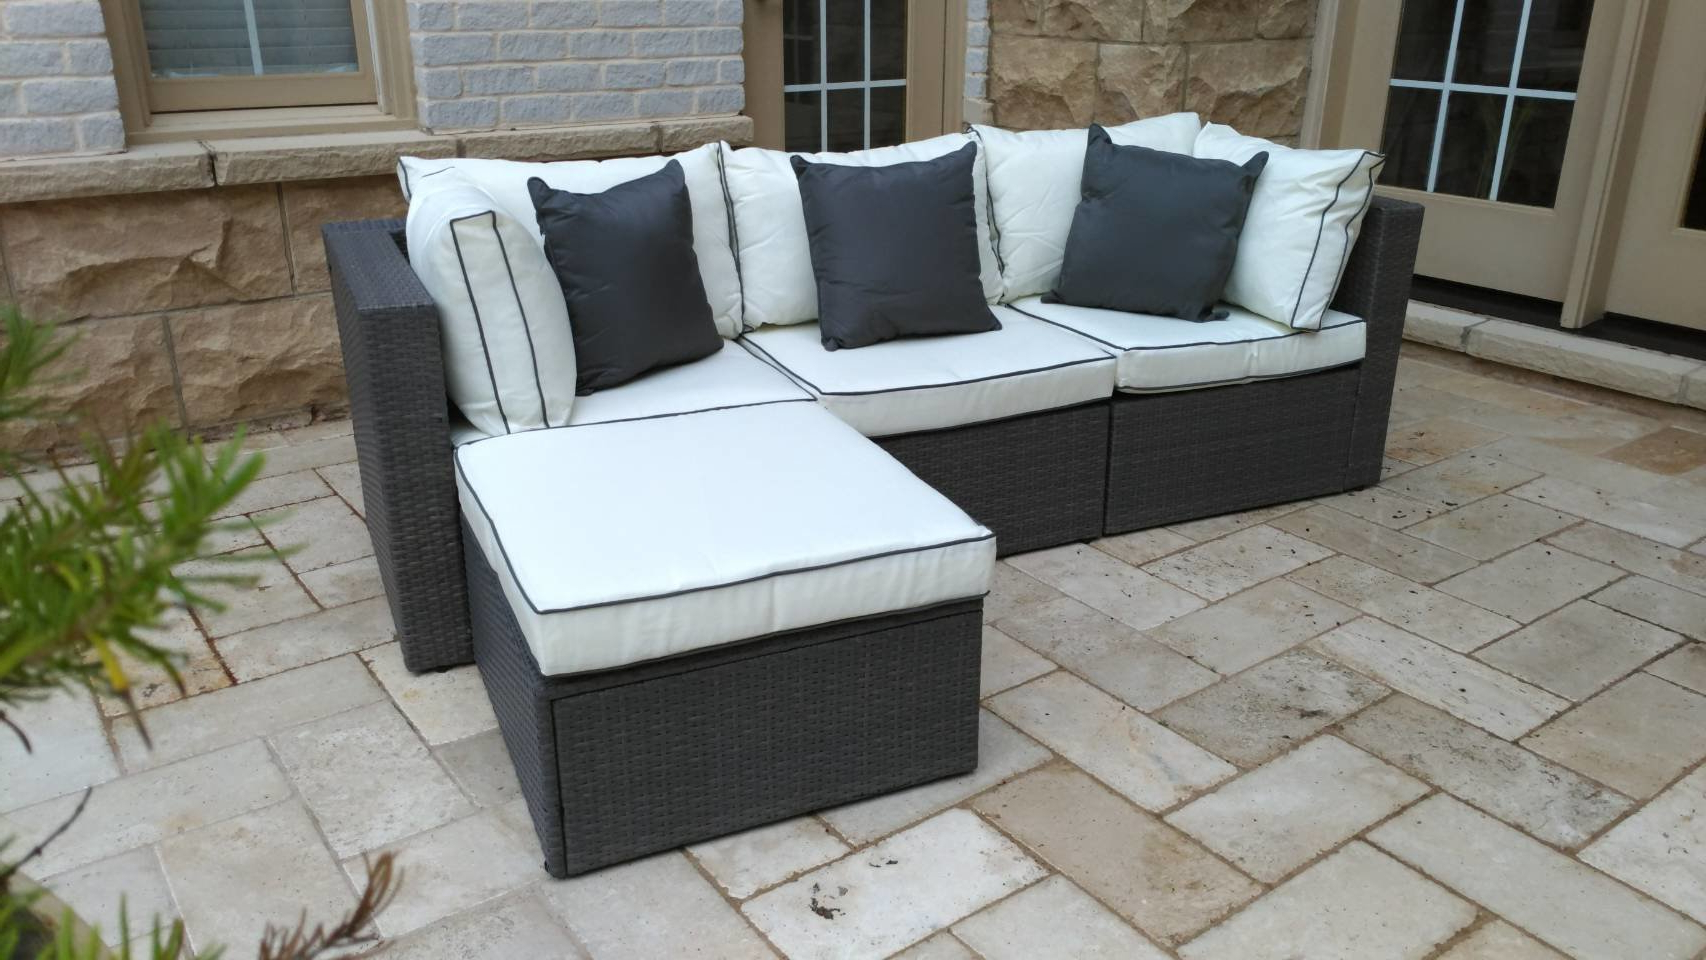 Popular Burruss Patio Sectional With Cushions Inside Purington Circular Patio Sectionals With Cushions (View 12 of 20)